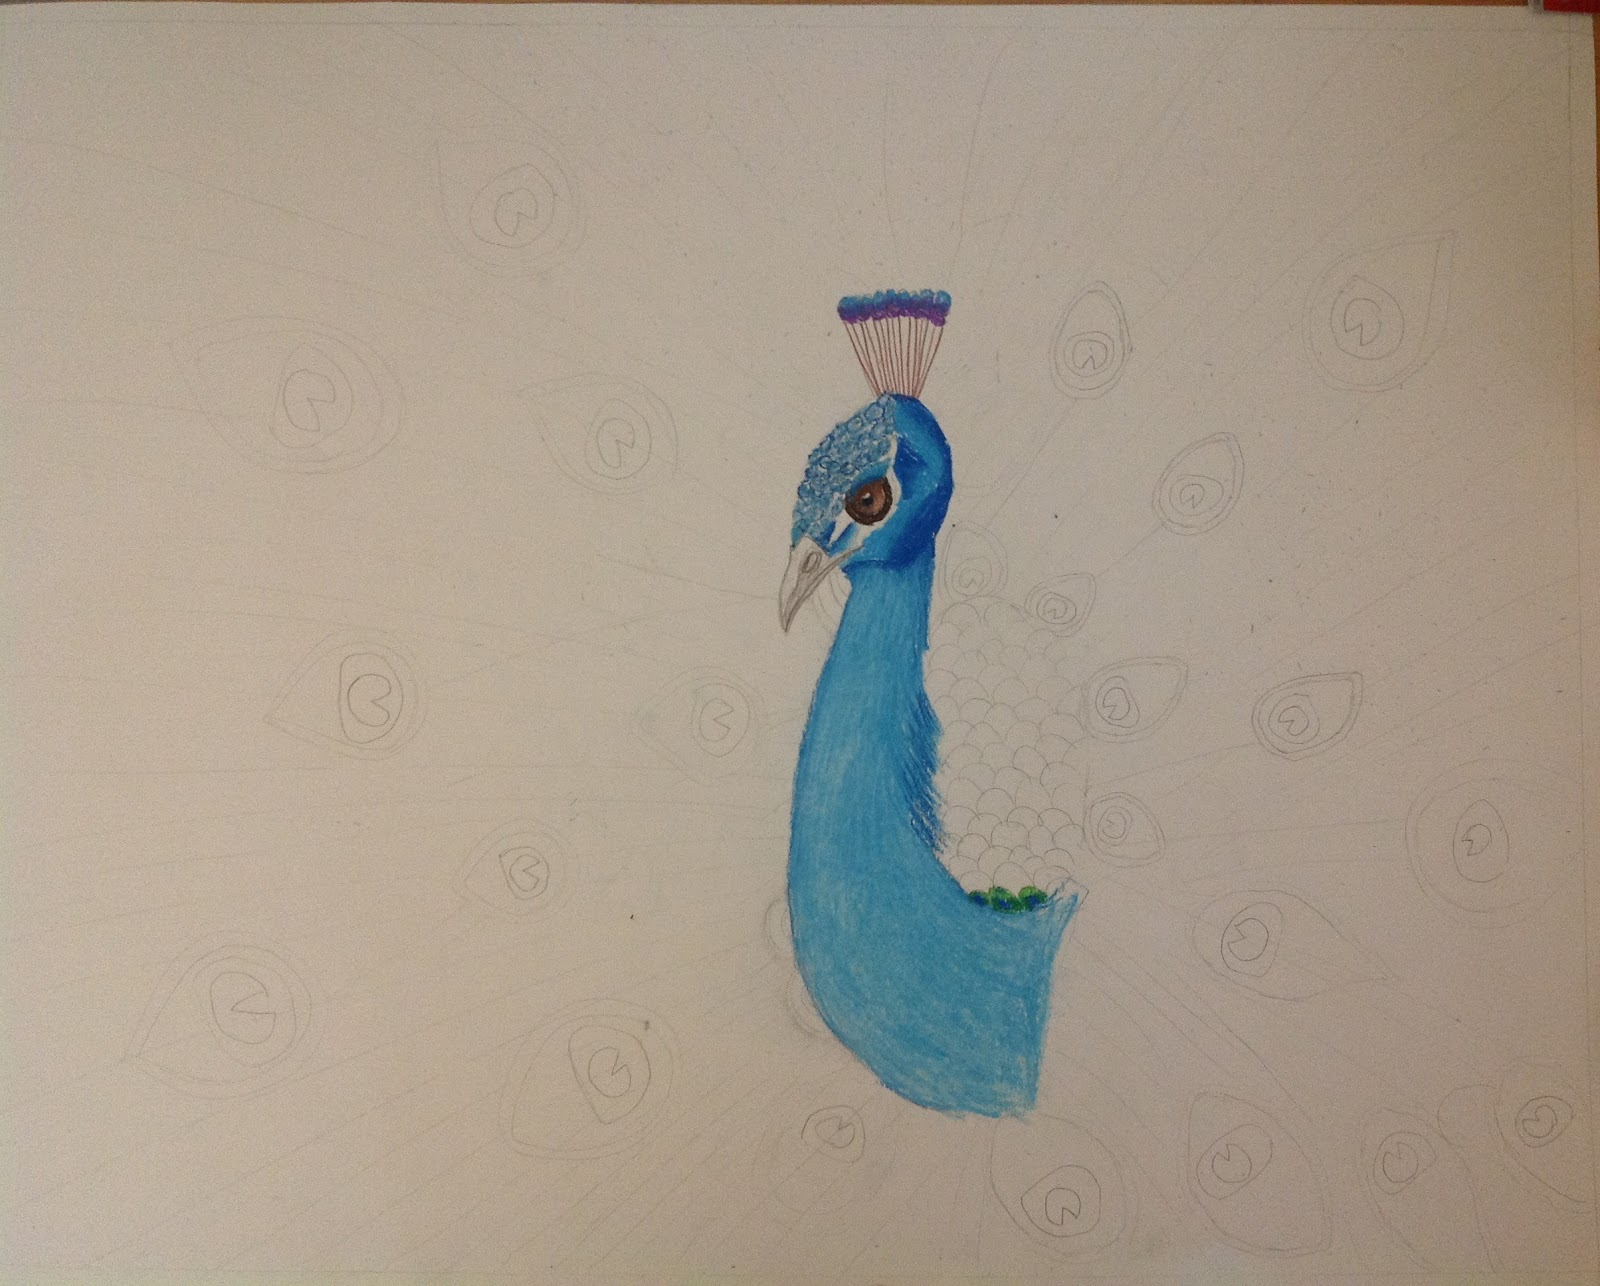 Peacock drawing step by step - photo#16